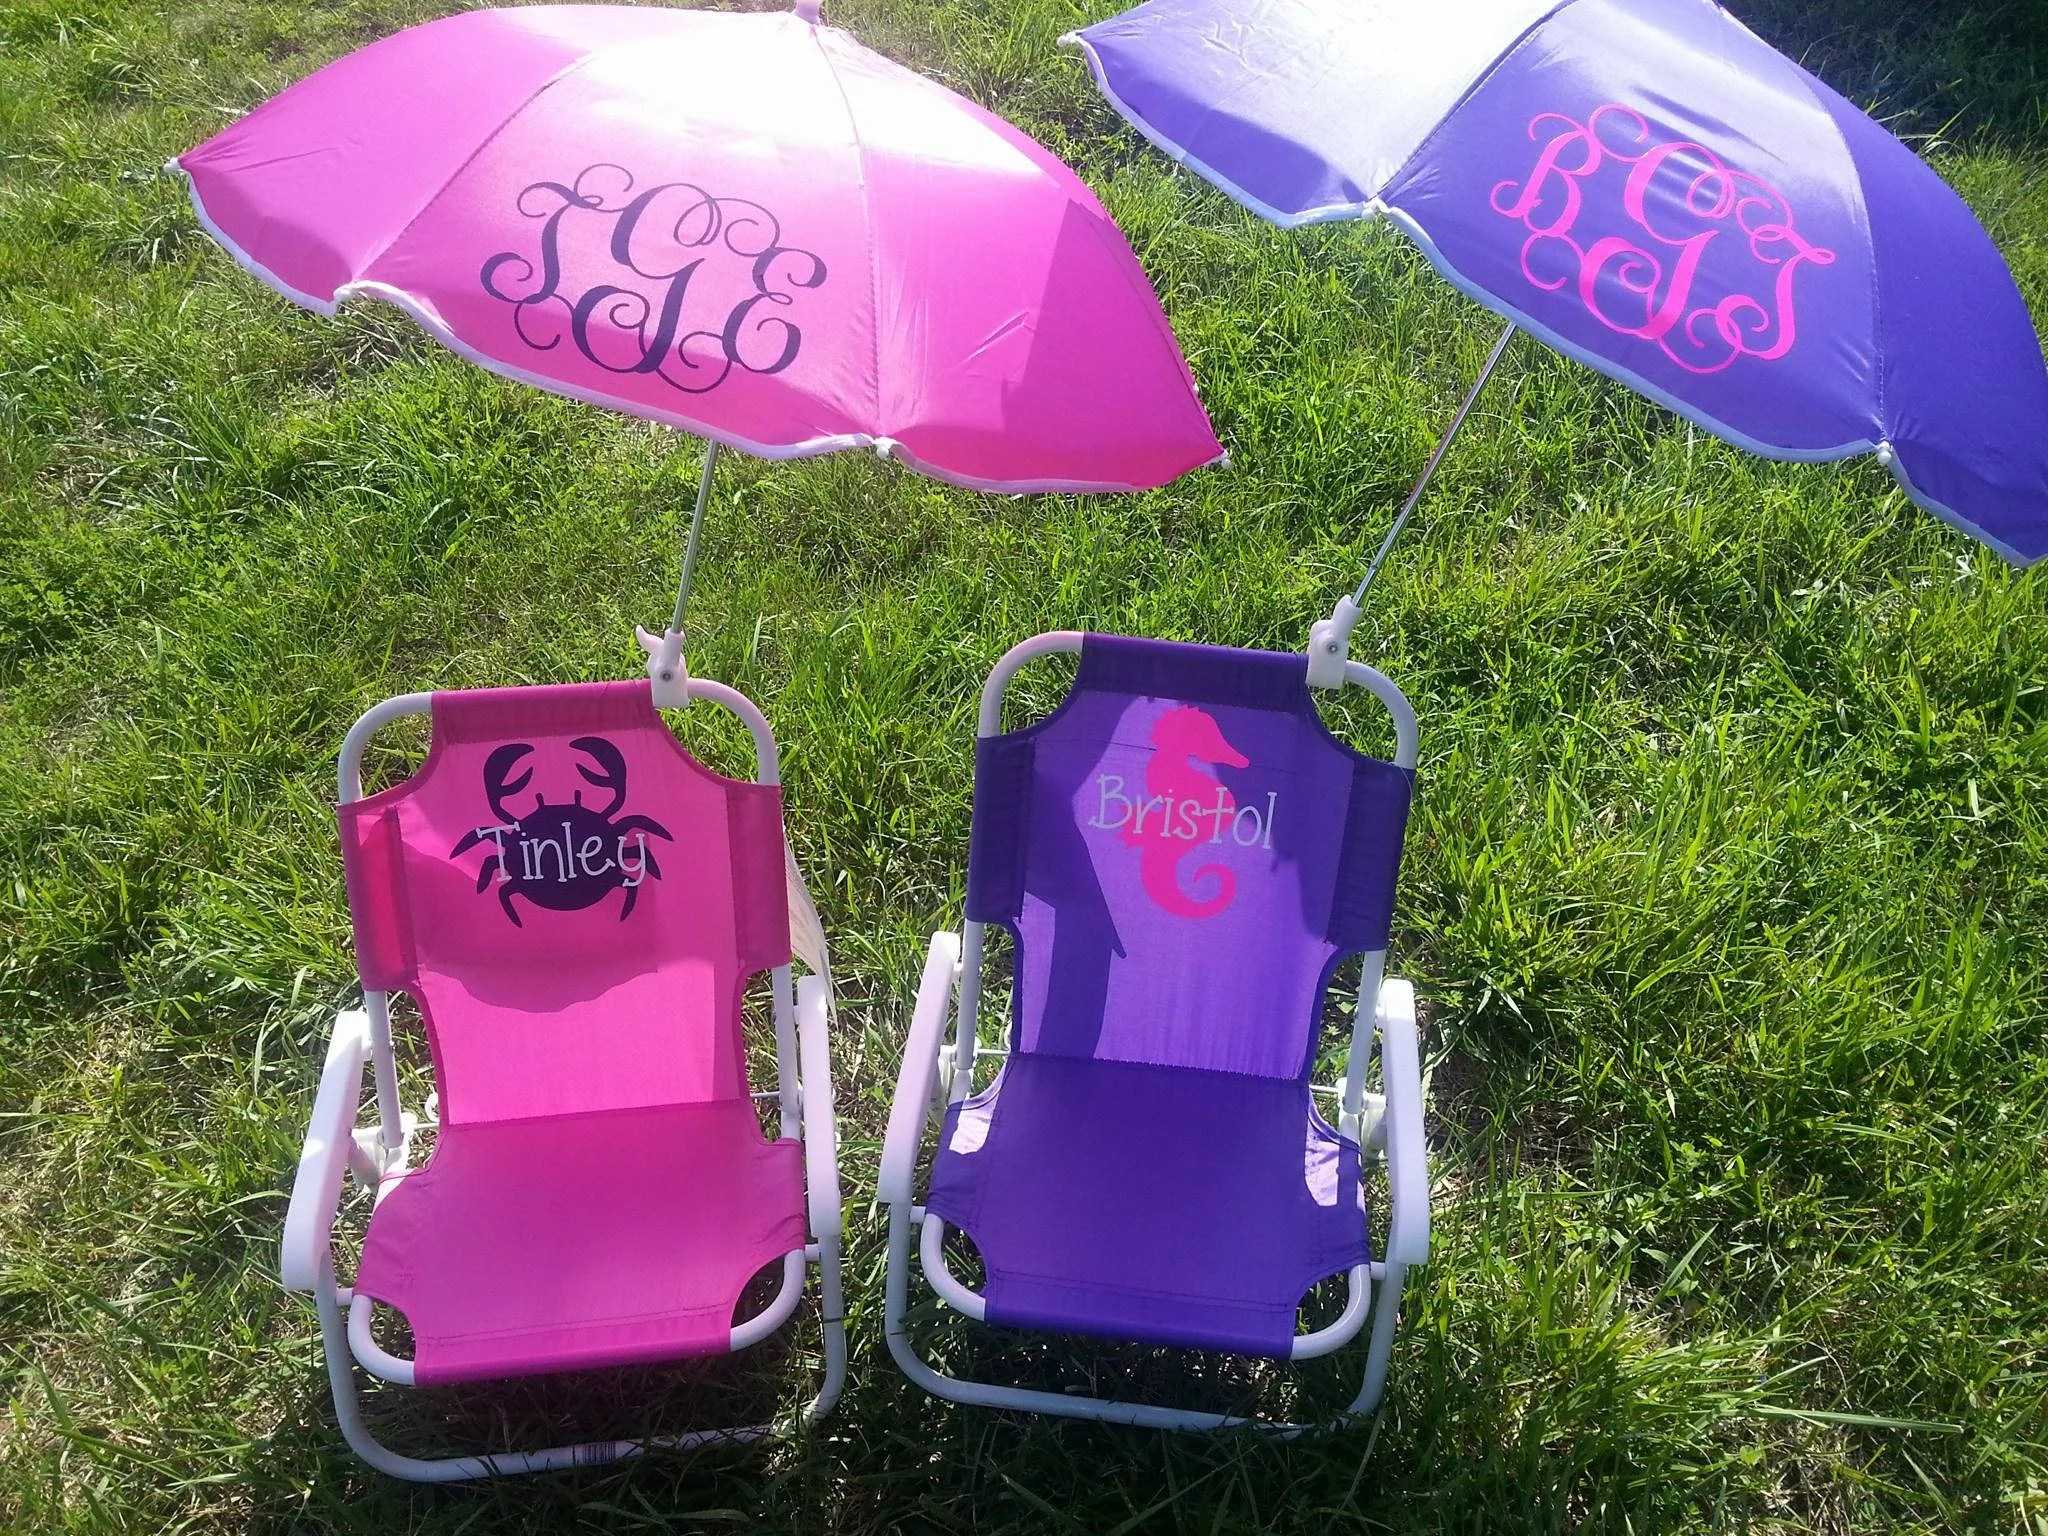 toddler beach chairs office desk and chair cad block childrens umbrella monogrammed etsy image 0